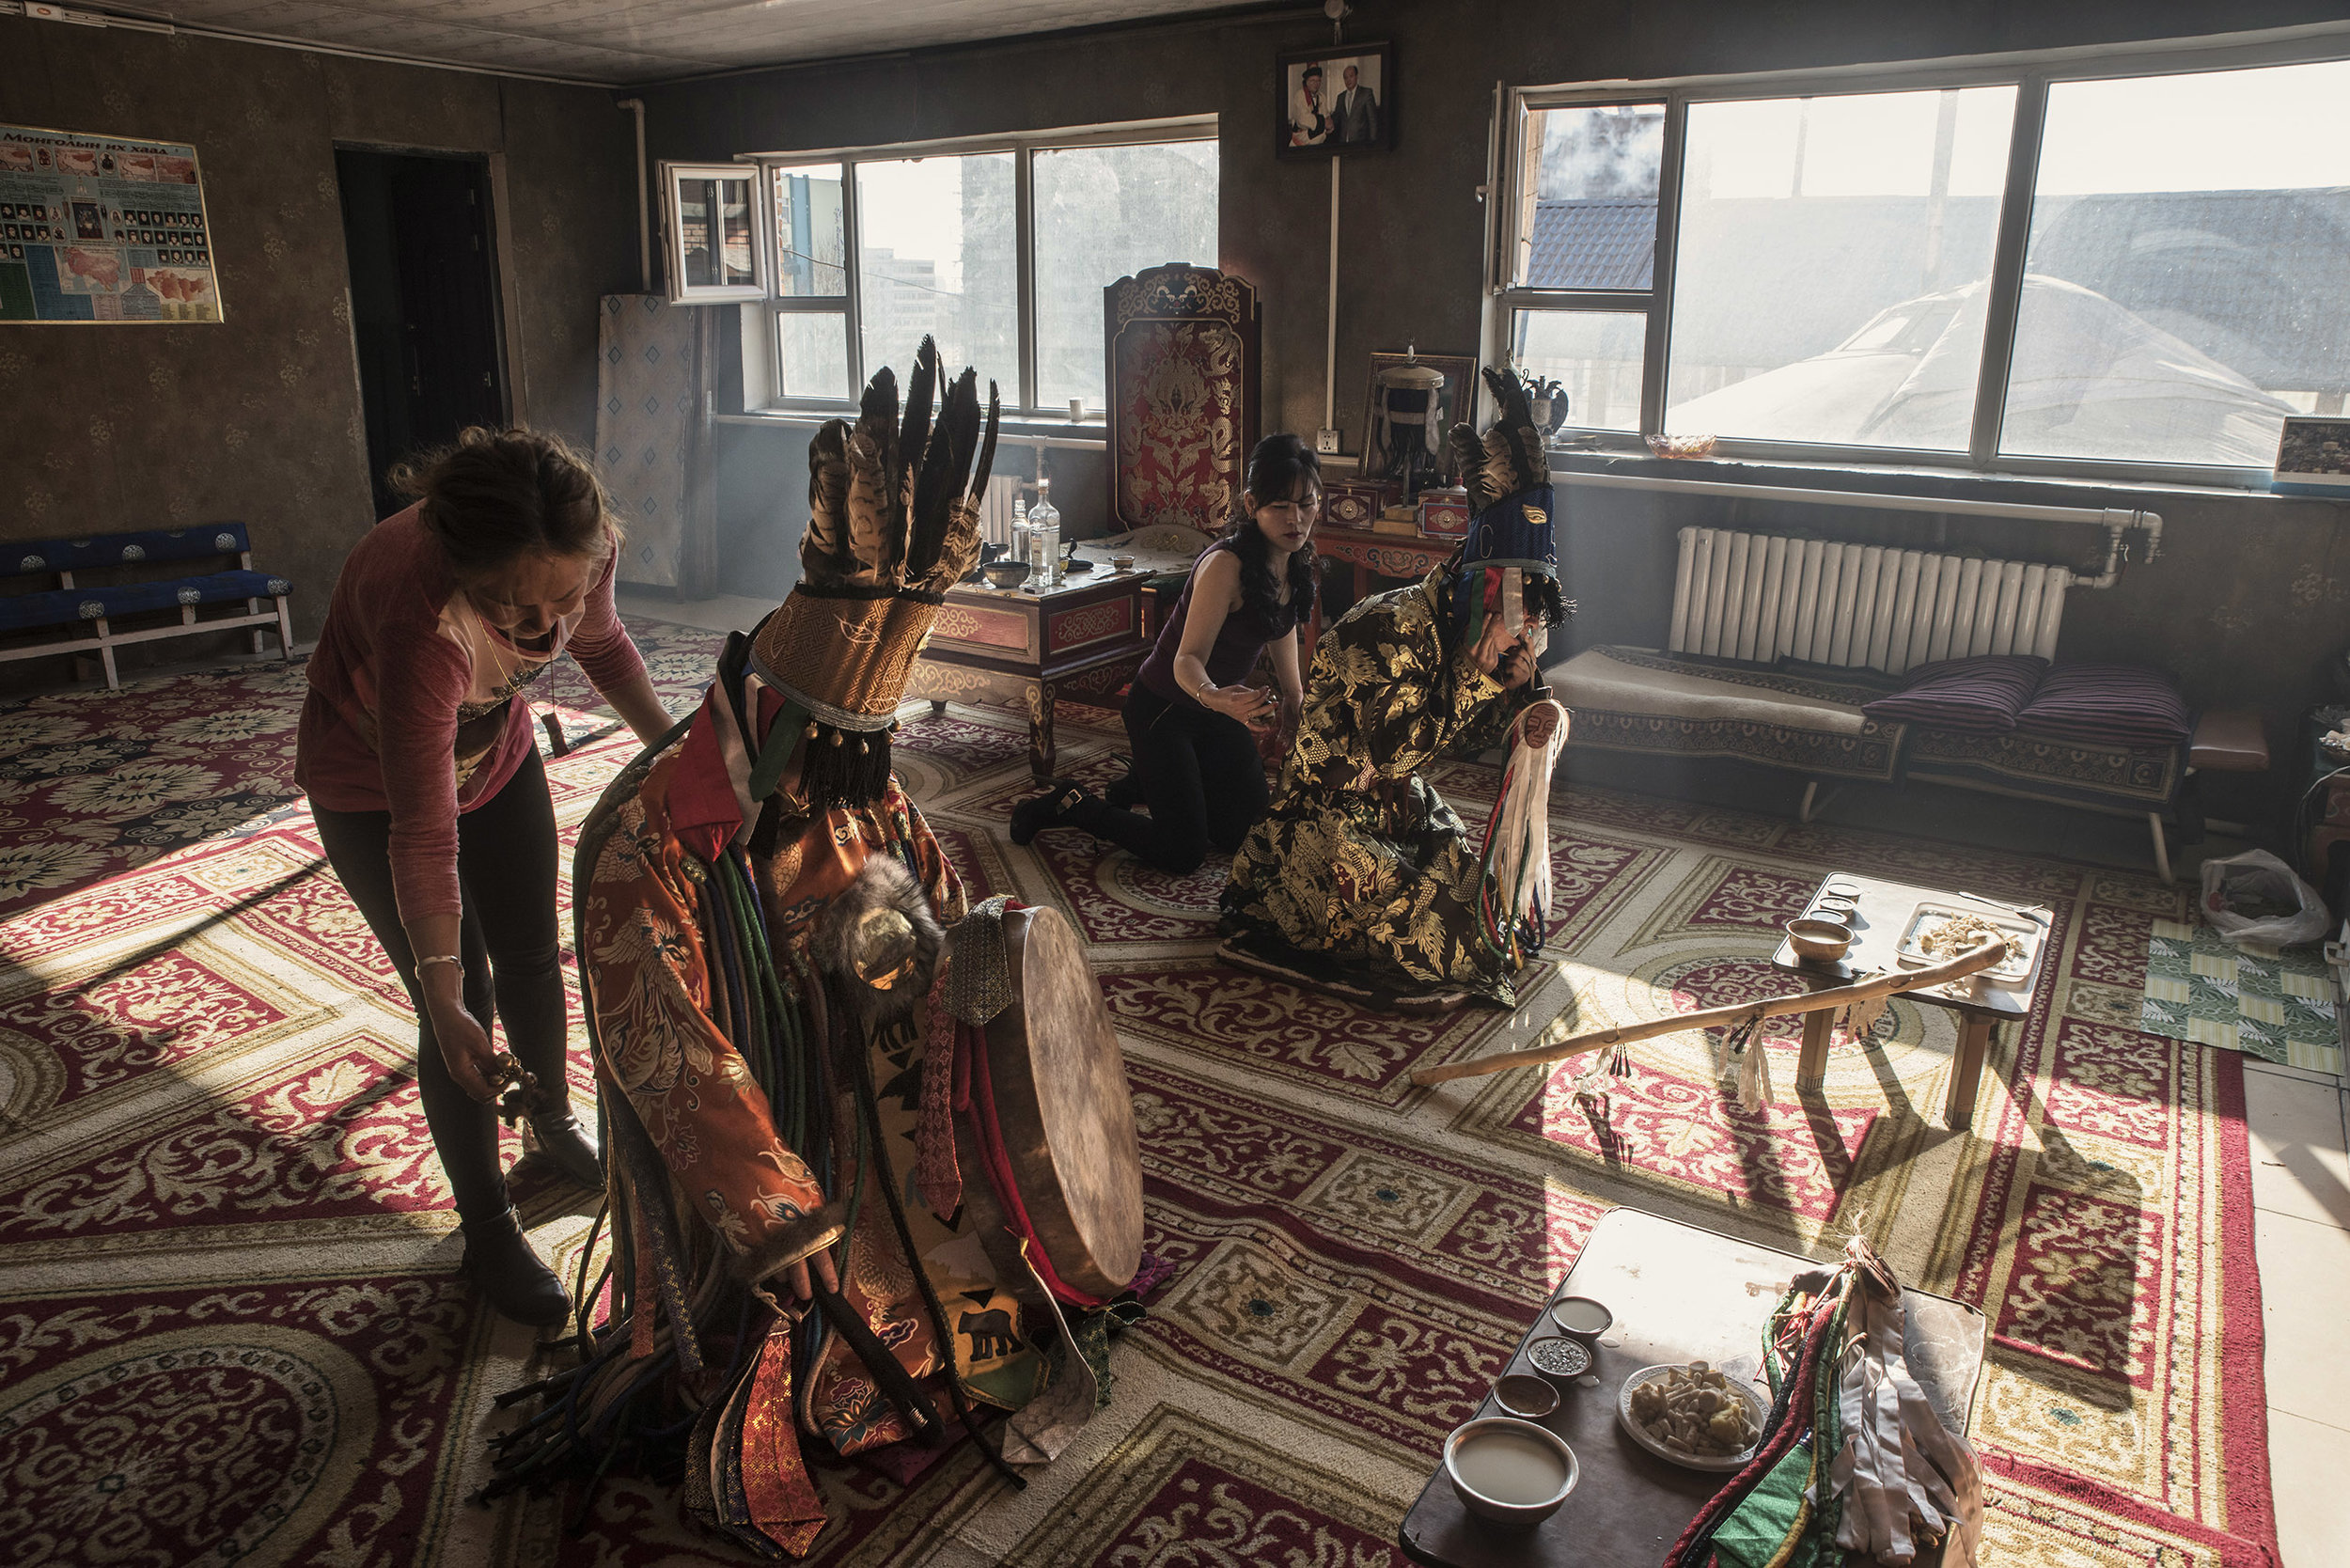 Suhe and Tugsuu, ethnic Mongols from China preparing to get in a trance at the home of master shaman Byambadorj under the guidance of his daughter Enkhoyun (left). Tugsuu and Suhe have come to Ulaanbaatar to be initiated as shamans.   The call to become shaman usually occurs during a prolonged illness, during which a connection with a spirit happens. The apprentice then seek the help of a master shaman to learn the skills that will allow them to get in trance and connect with their spirit on a regular basis. The training of novice shamans is good source of incomes for master shamans.